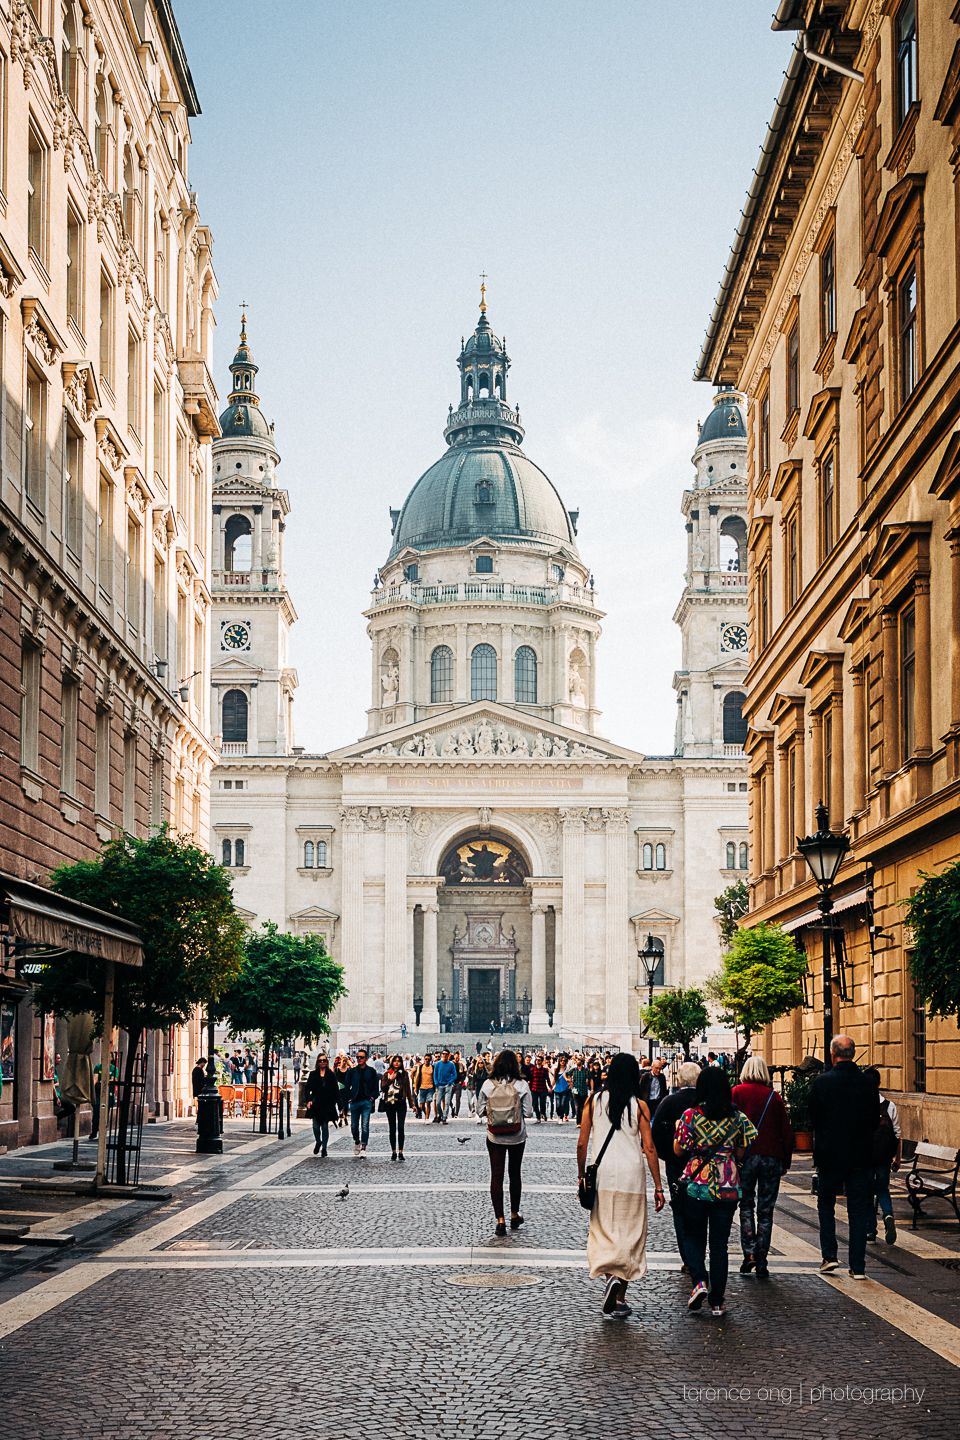 Szent István Bazilika, a beautiful church in the heart of Budapest, Hungary